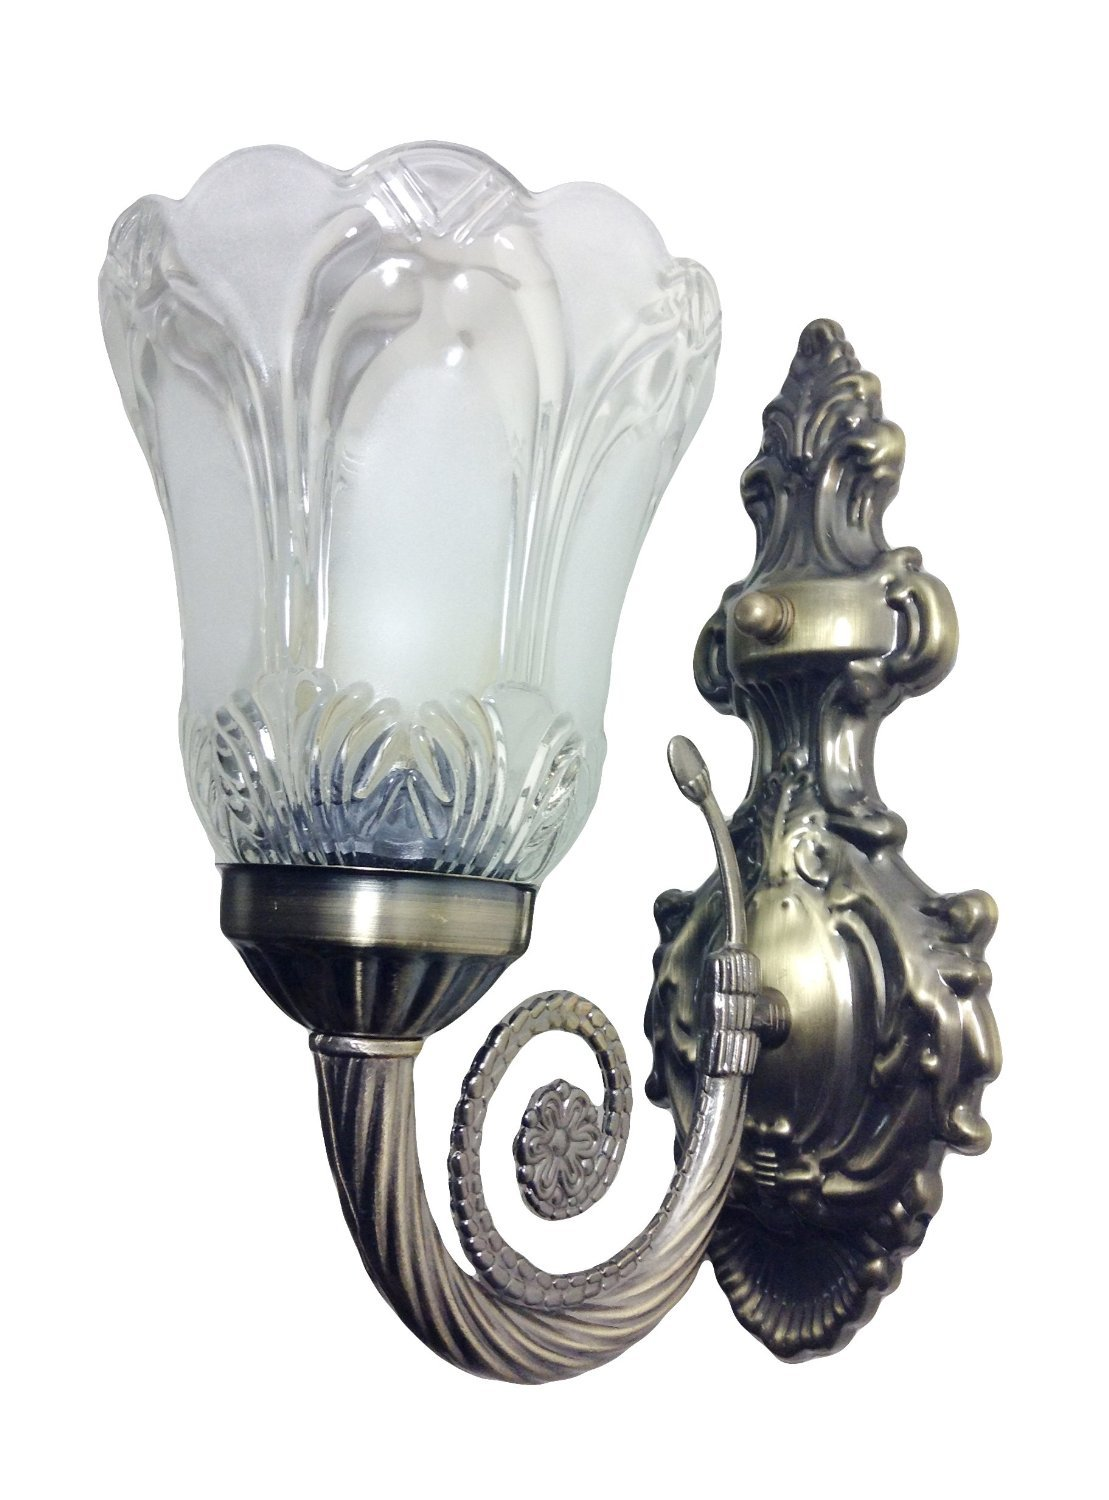 Rck Imported Antique Wall Light(Wall Hanging Lamp in Antique Design )